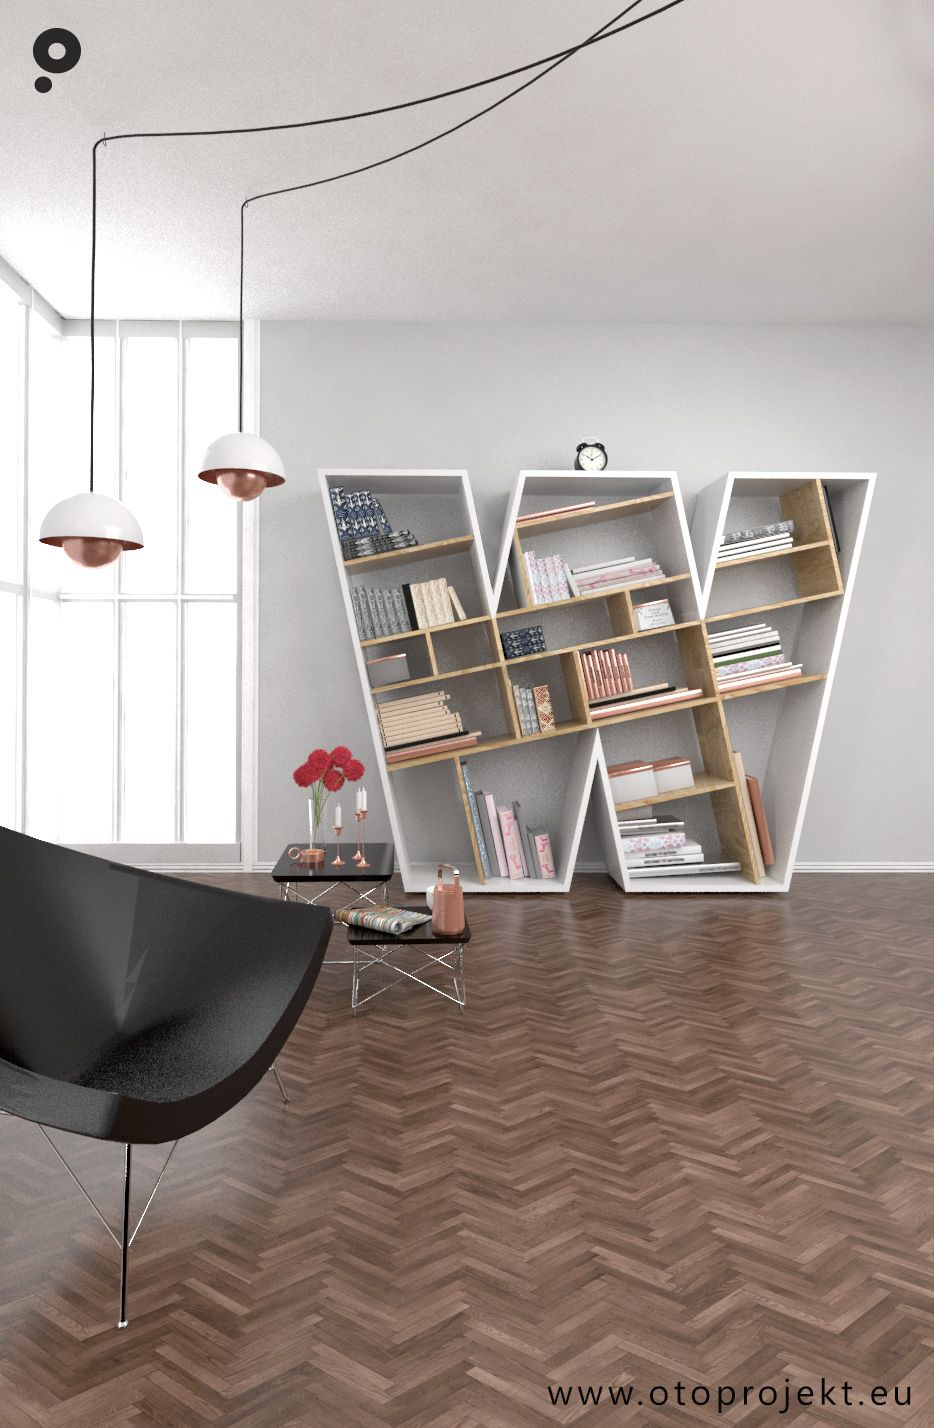 Our New Project Released Wu Bookshelf That Will Take Care For All Your Books Interior Furniture Design Shelves